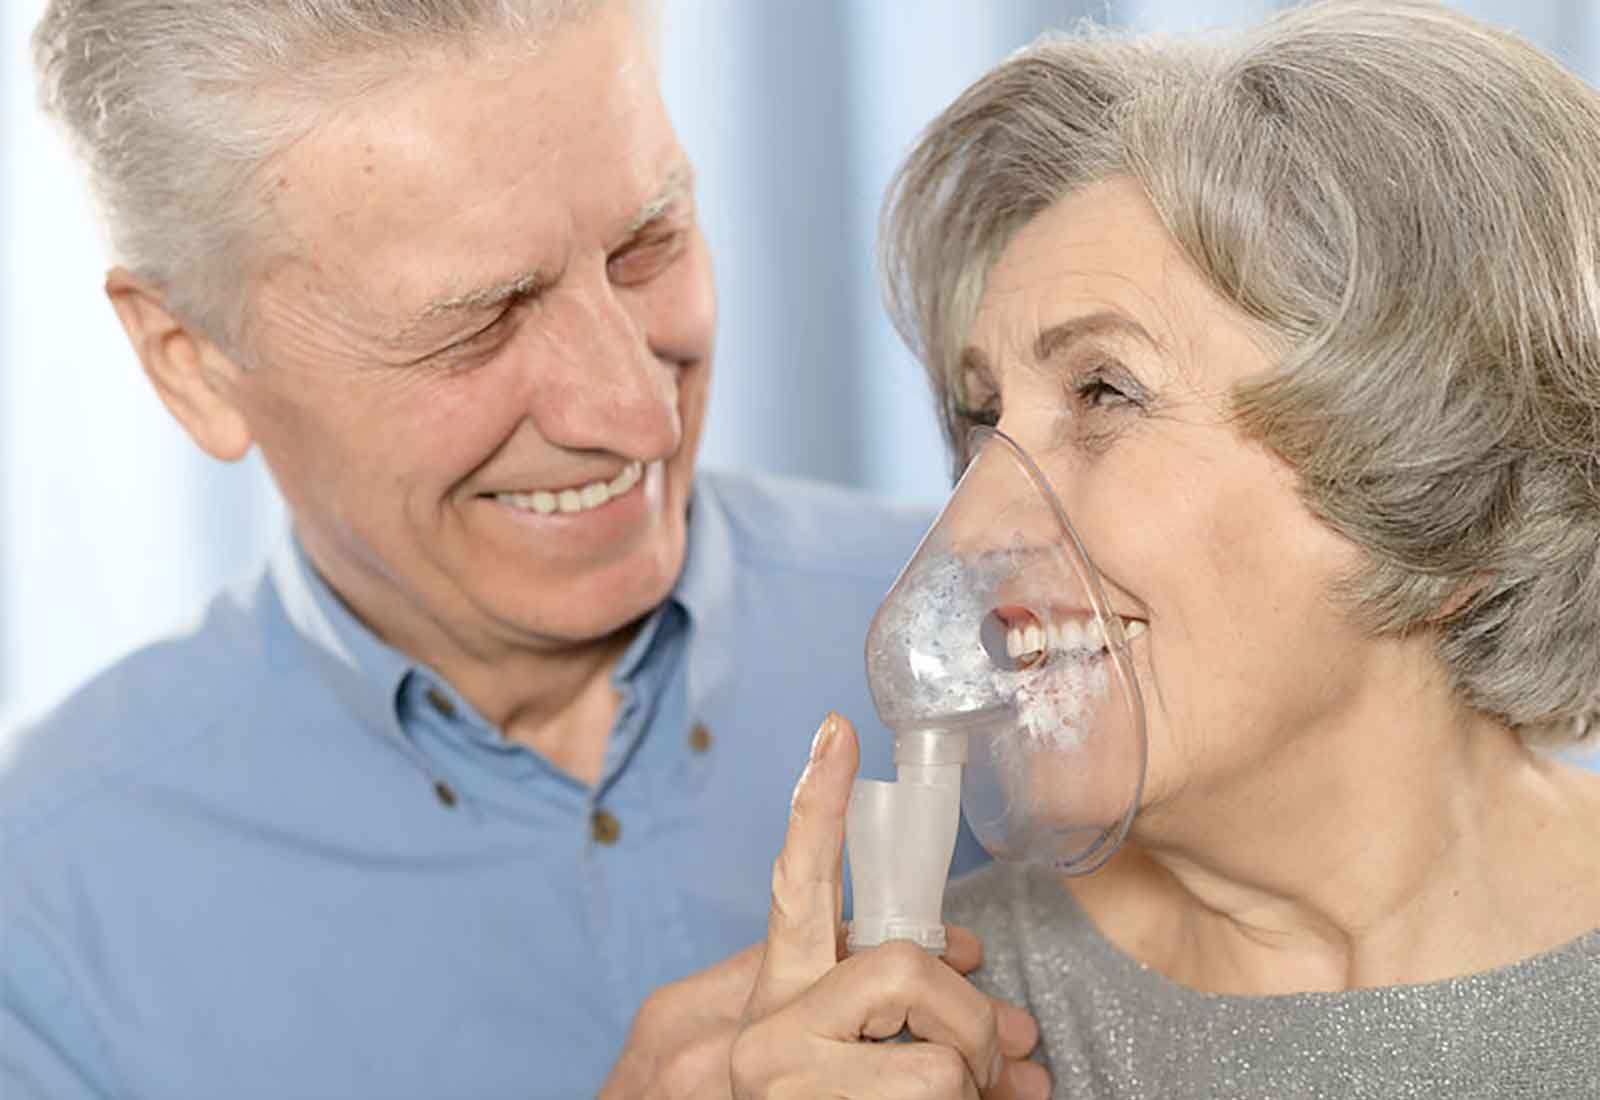 Emotional Wellbeing in Chronic Obstructive Pulmonary Disease (COPD)